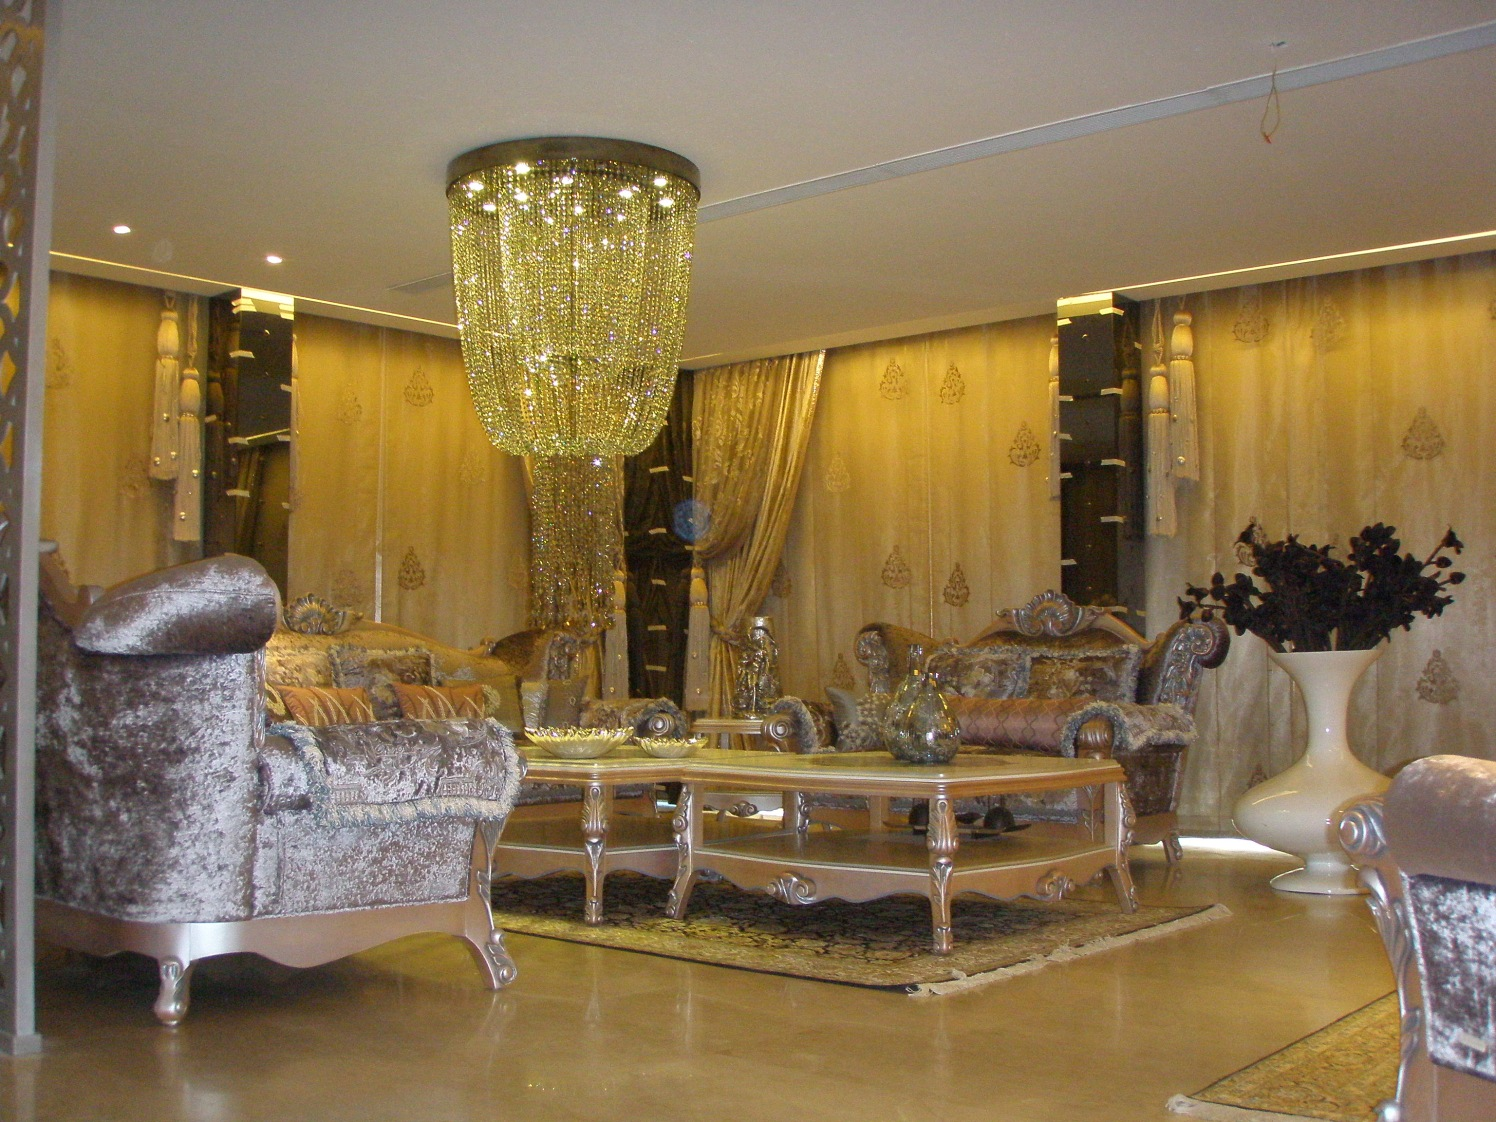 Gold And Silver Shade Vintage Living Room by Khayati Living-room Vintage | Interior Design Photos & Ideas